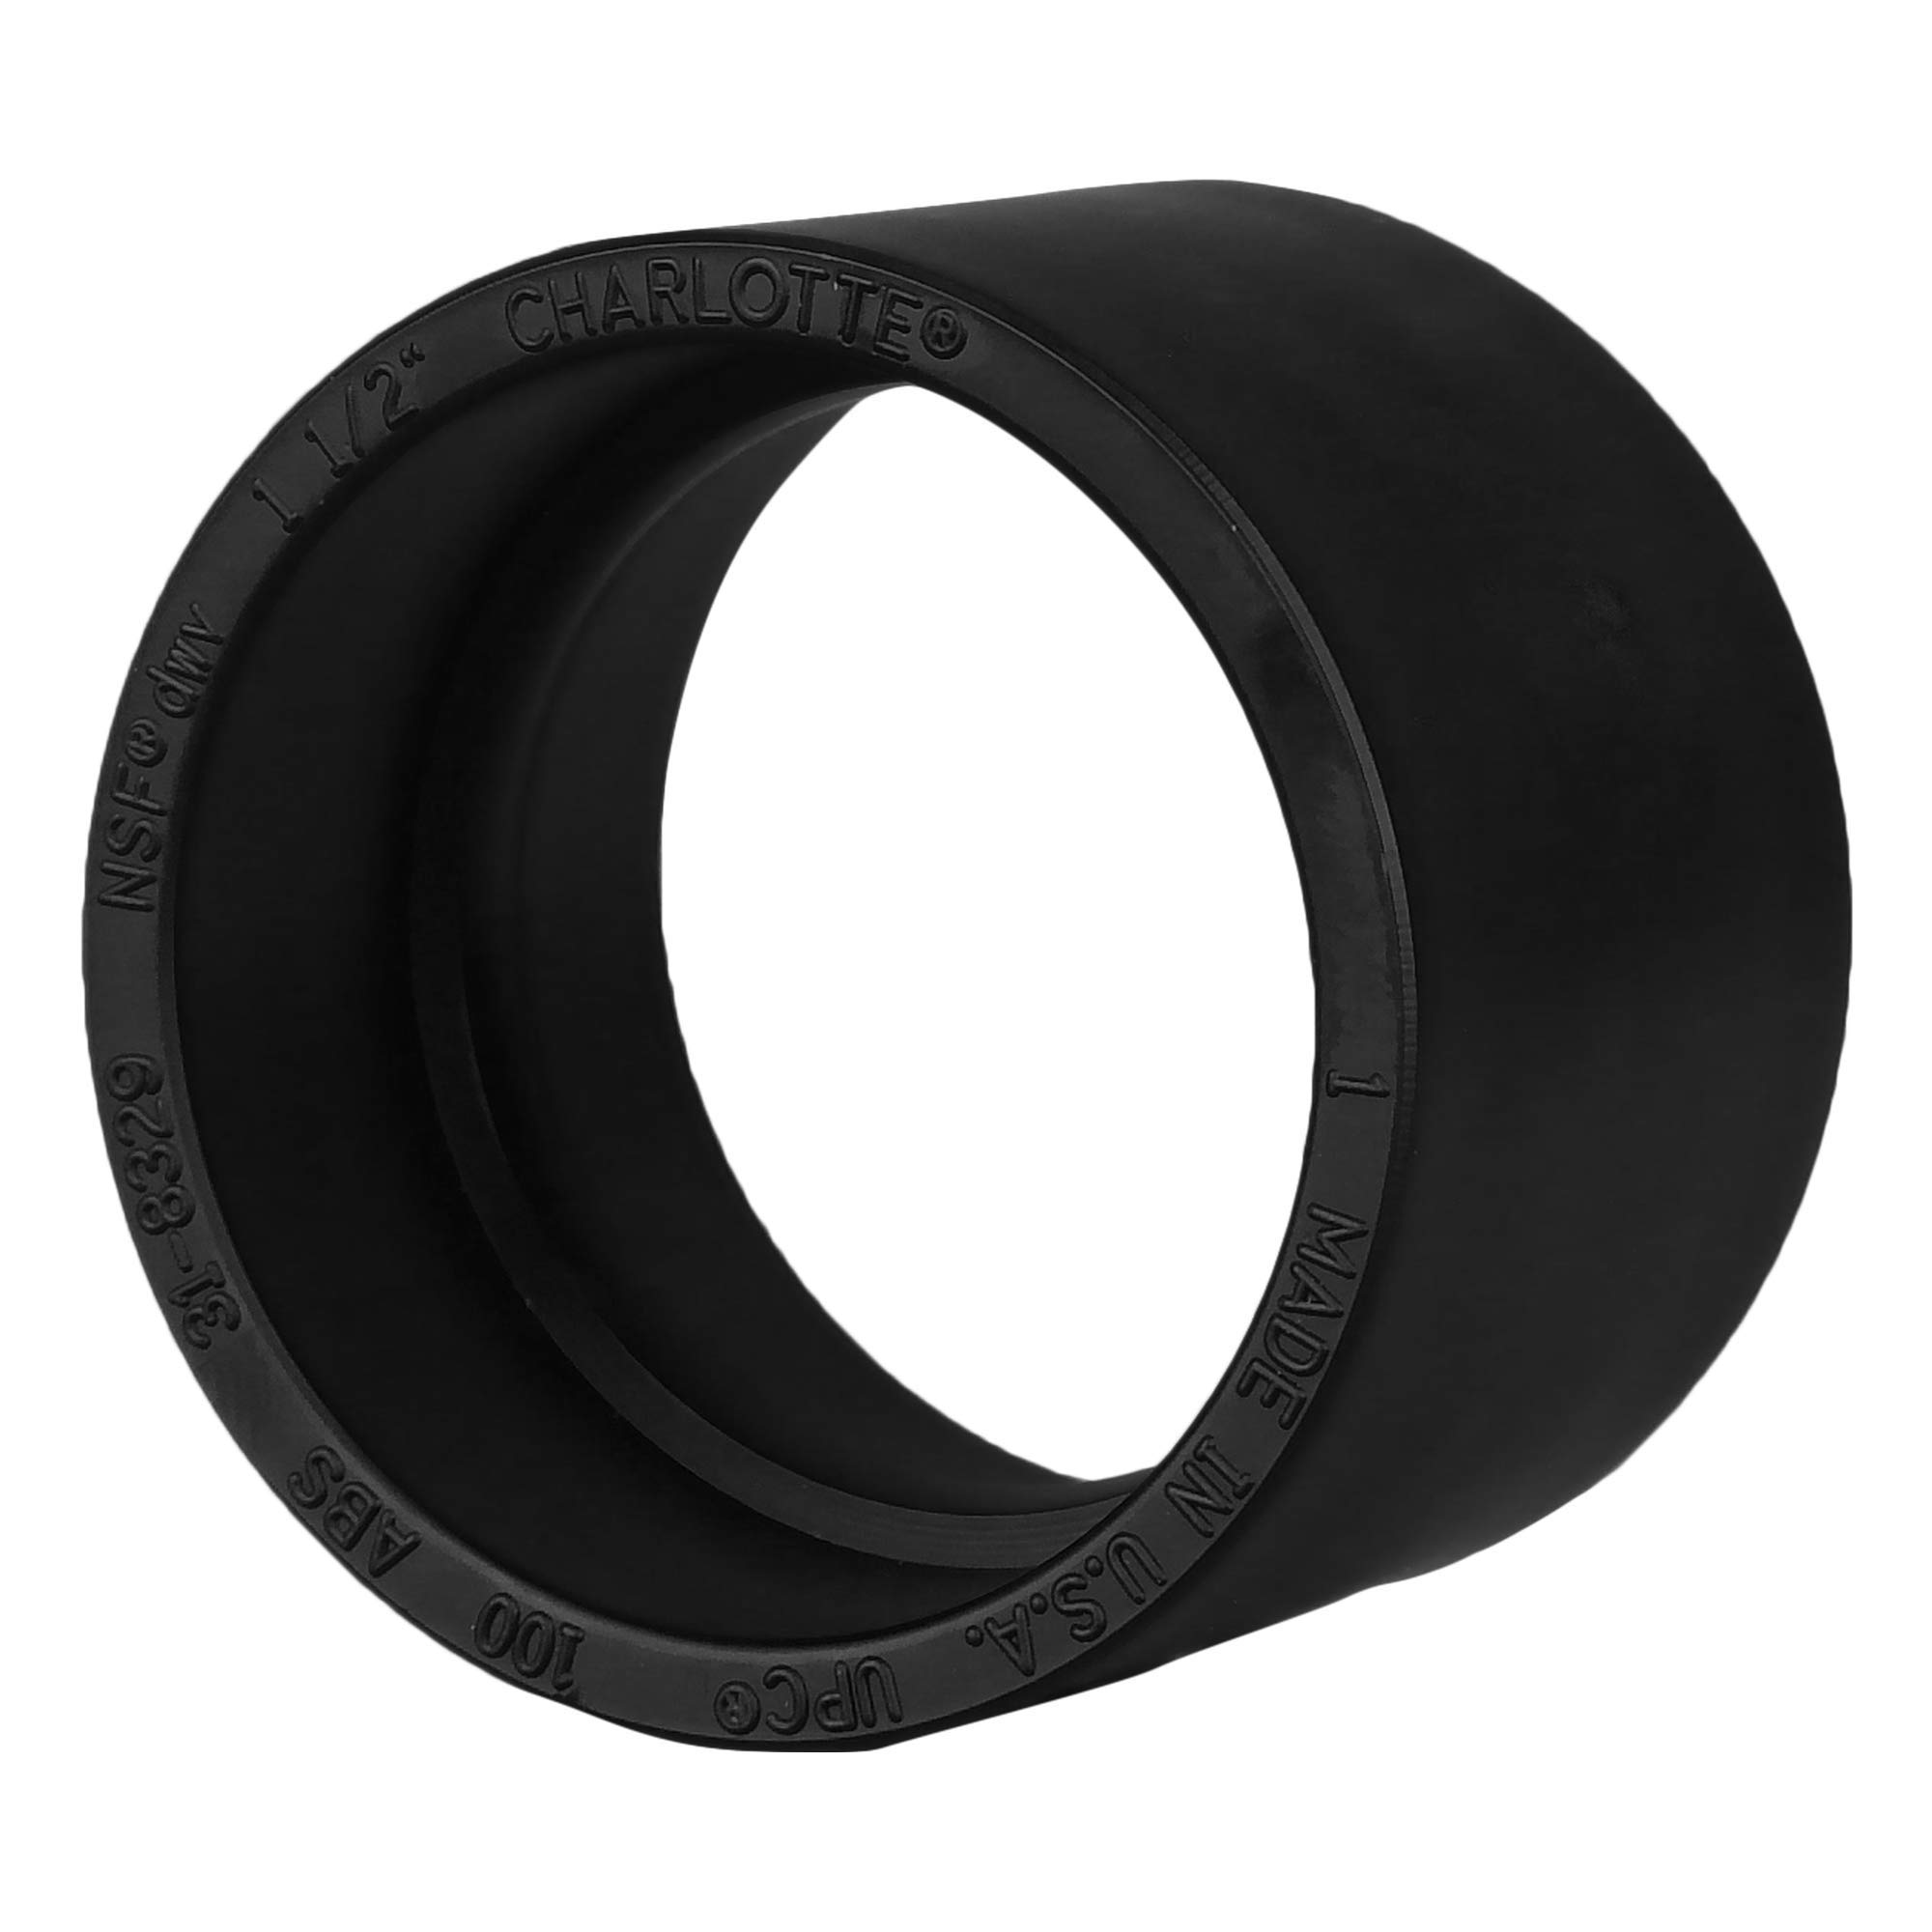 Charlotte Pipe 1-1/2'' DWV Coupling ABS DWV (Drain, Waste and Vent) Schedule 40 (Single Unit)